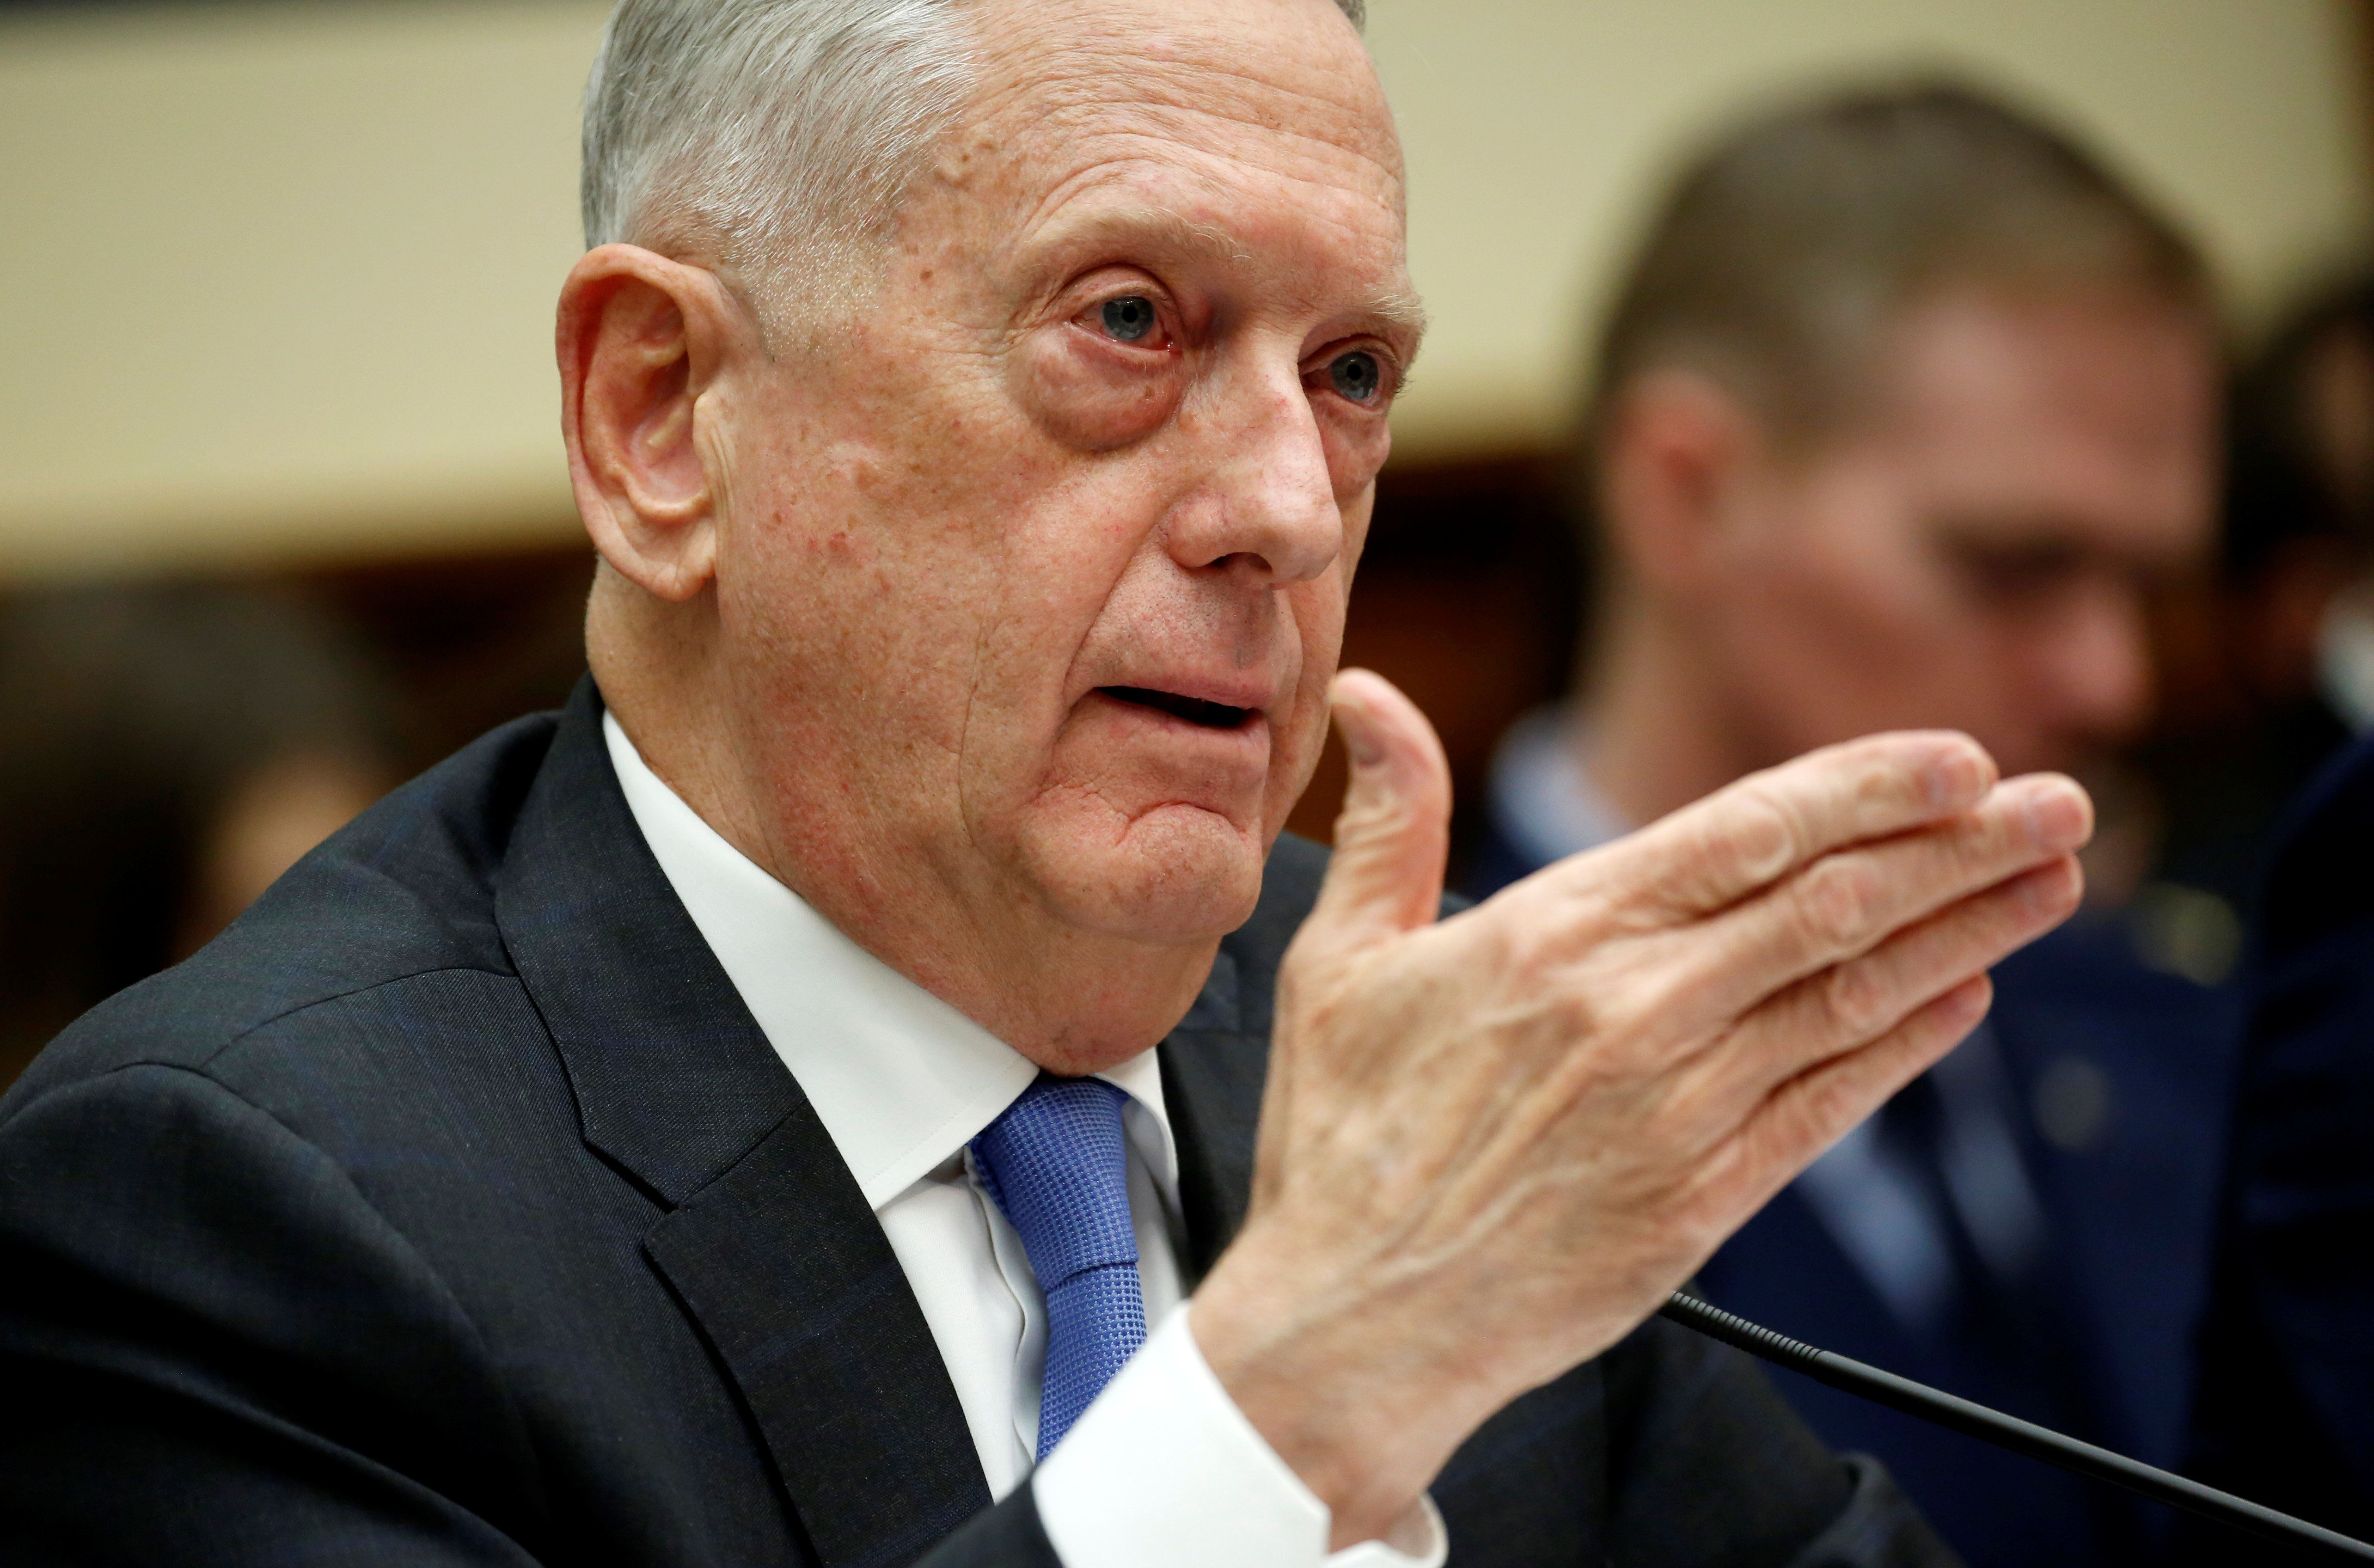 Defense Secretary Jim Mattis made his recommendations about transgender troops in a private conversation.